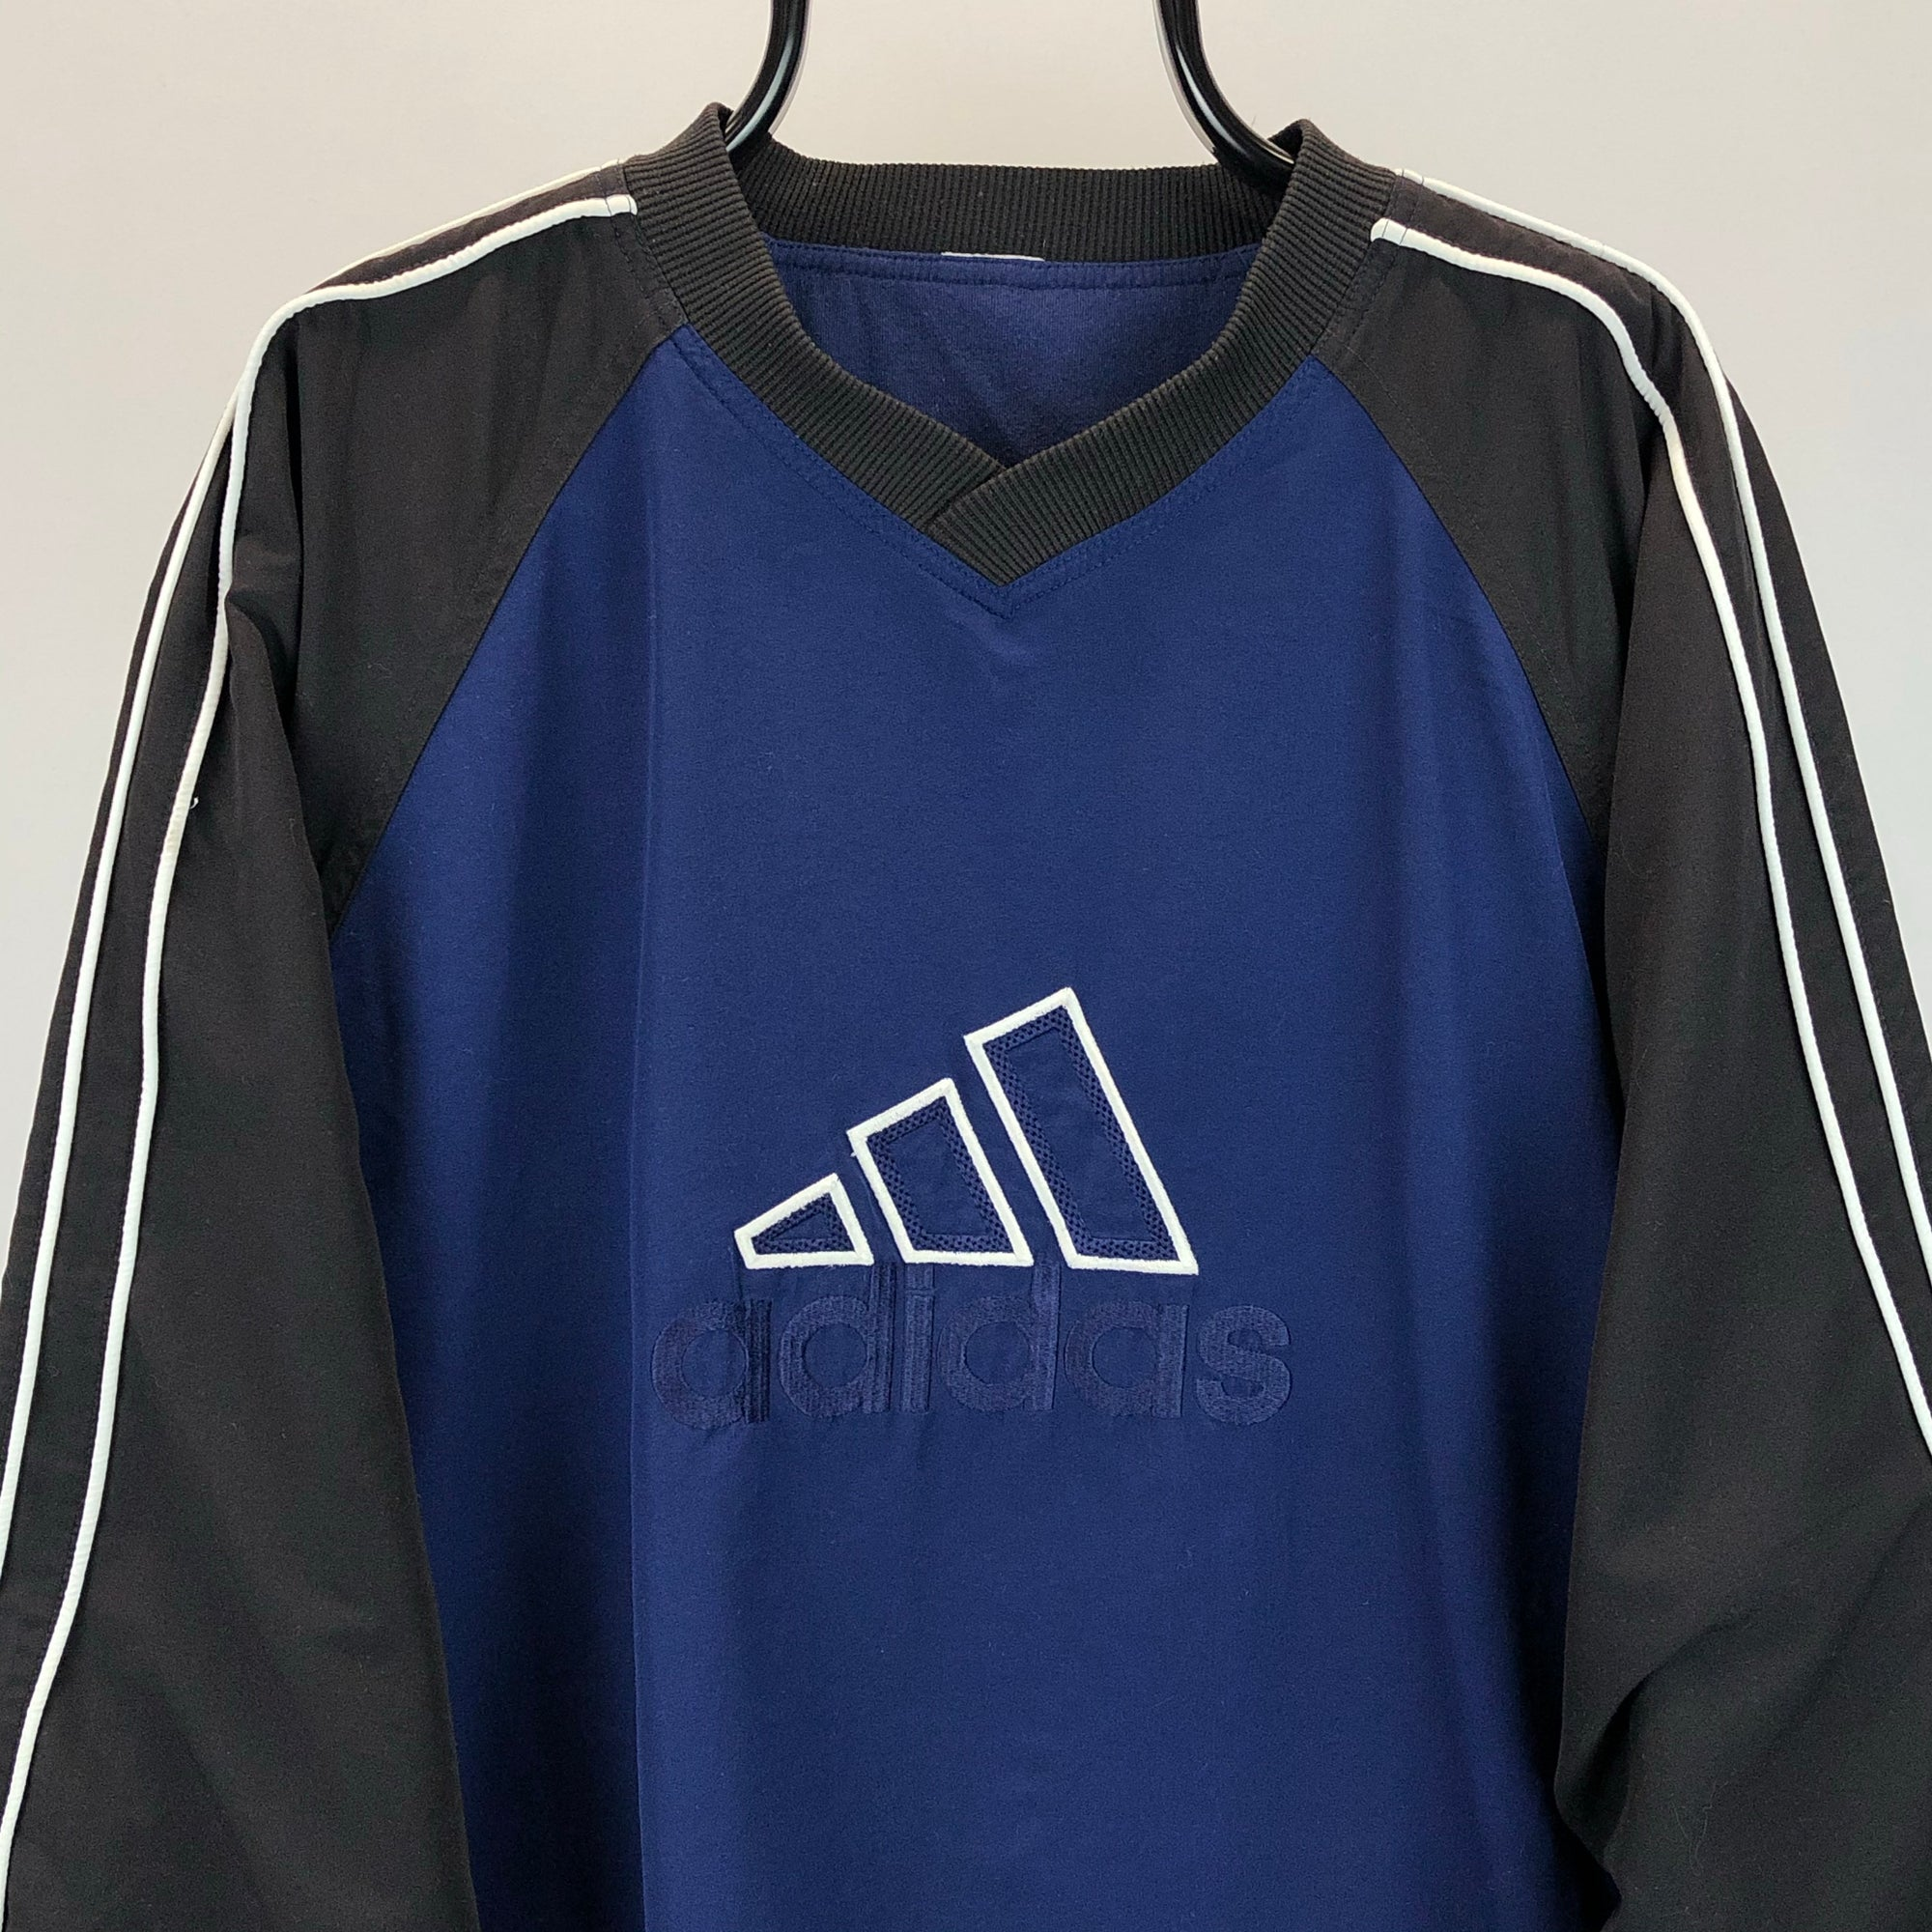 Vintage 90s Adidas Lined Nylon Sweatshirt in Navy & Blue - Men's Large/Women's XL